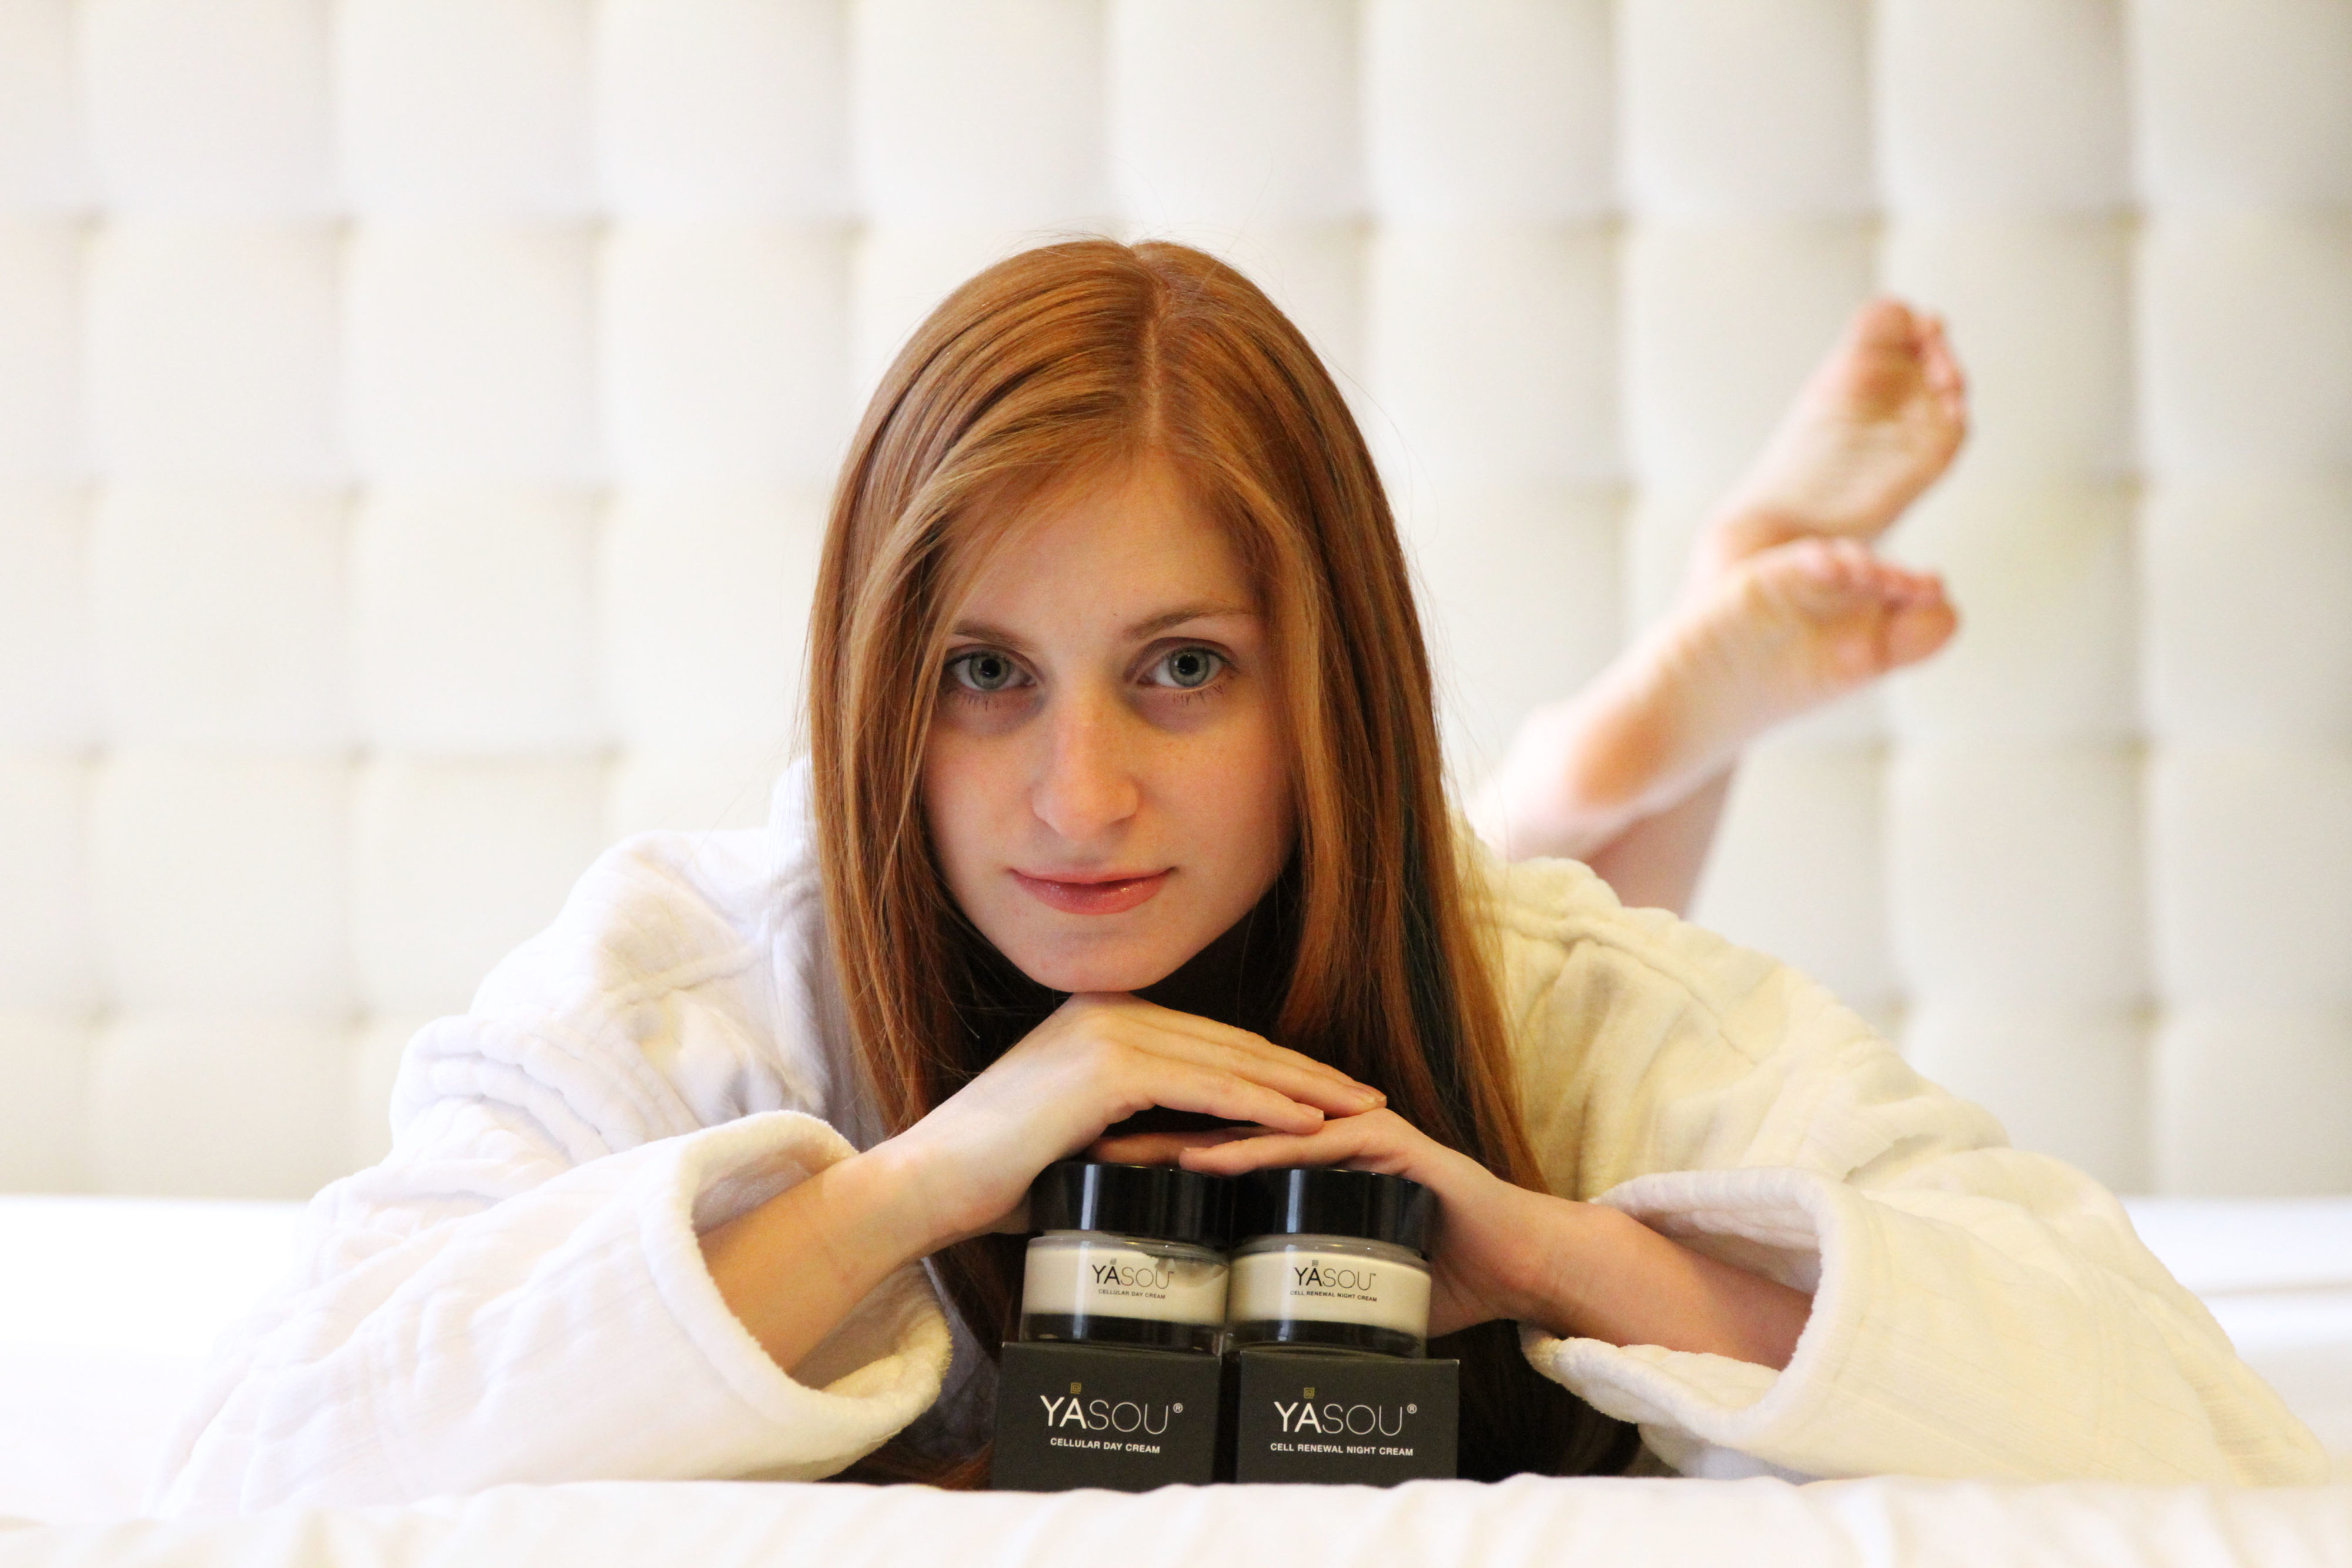 Redheaded Girl on bed with Yasou Skin Care Day and Night Cream